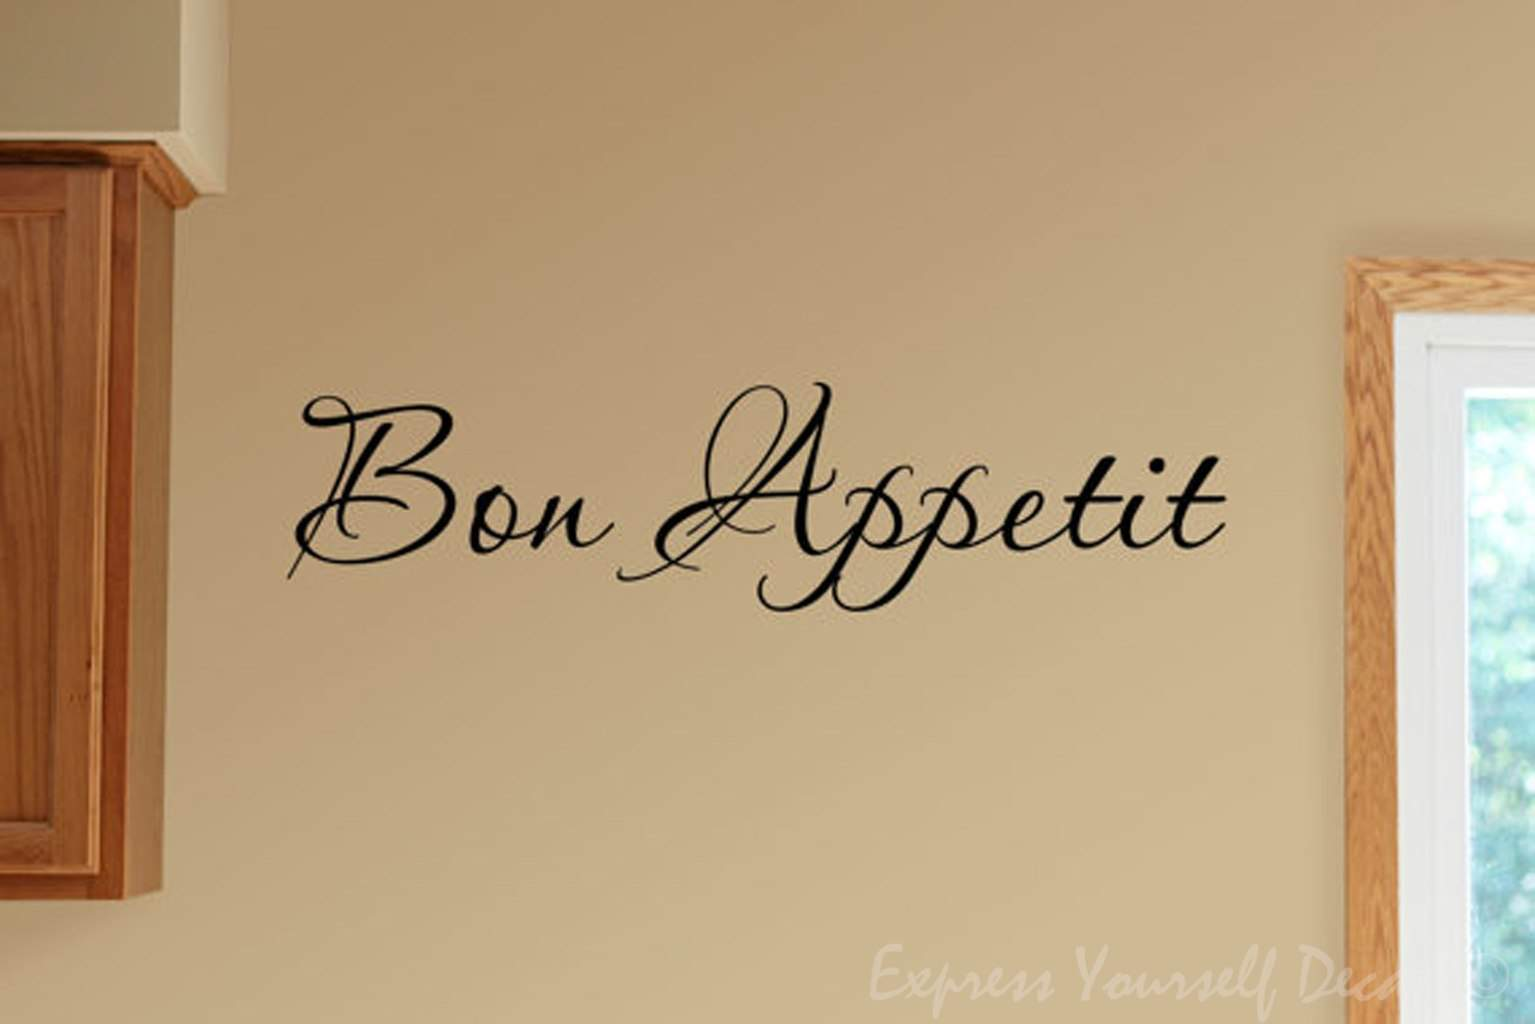 Bon appetit wall decal sticker wall decal wall art decal - Wall decor stickers online shopping ...